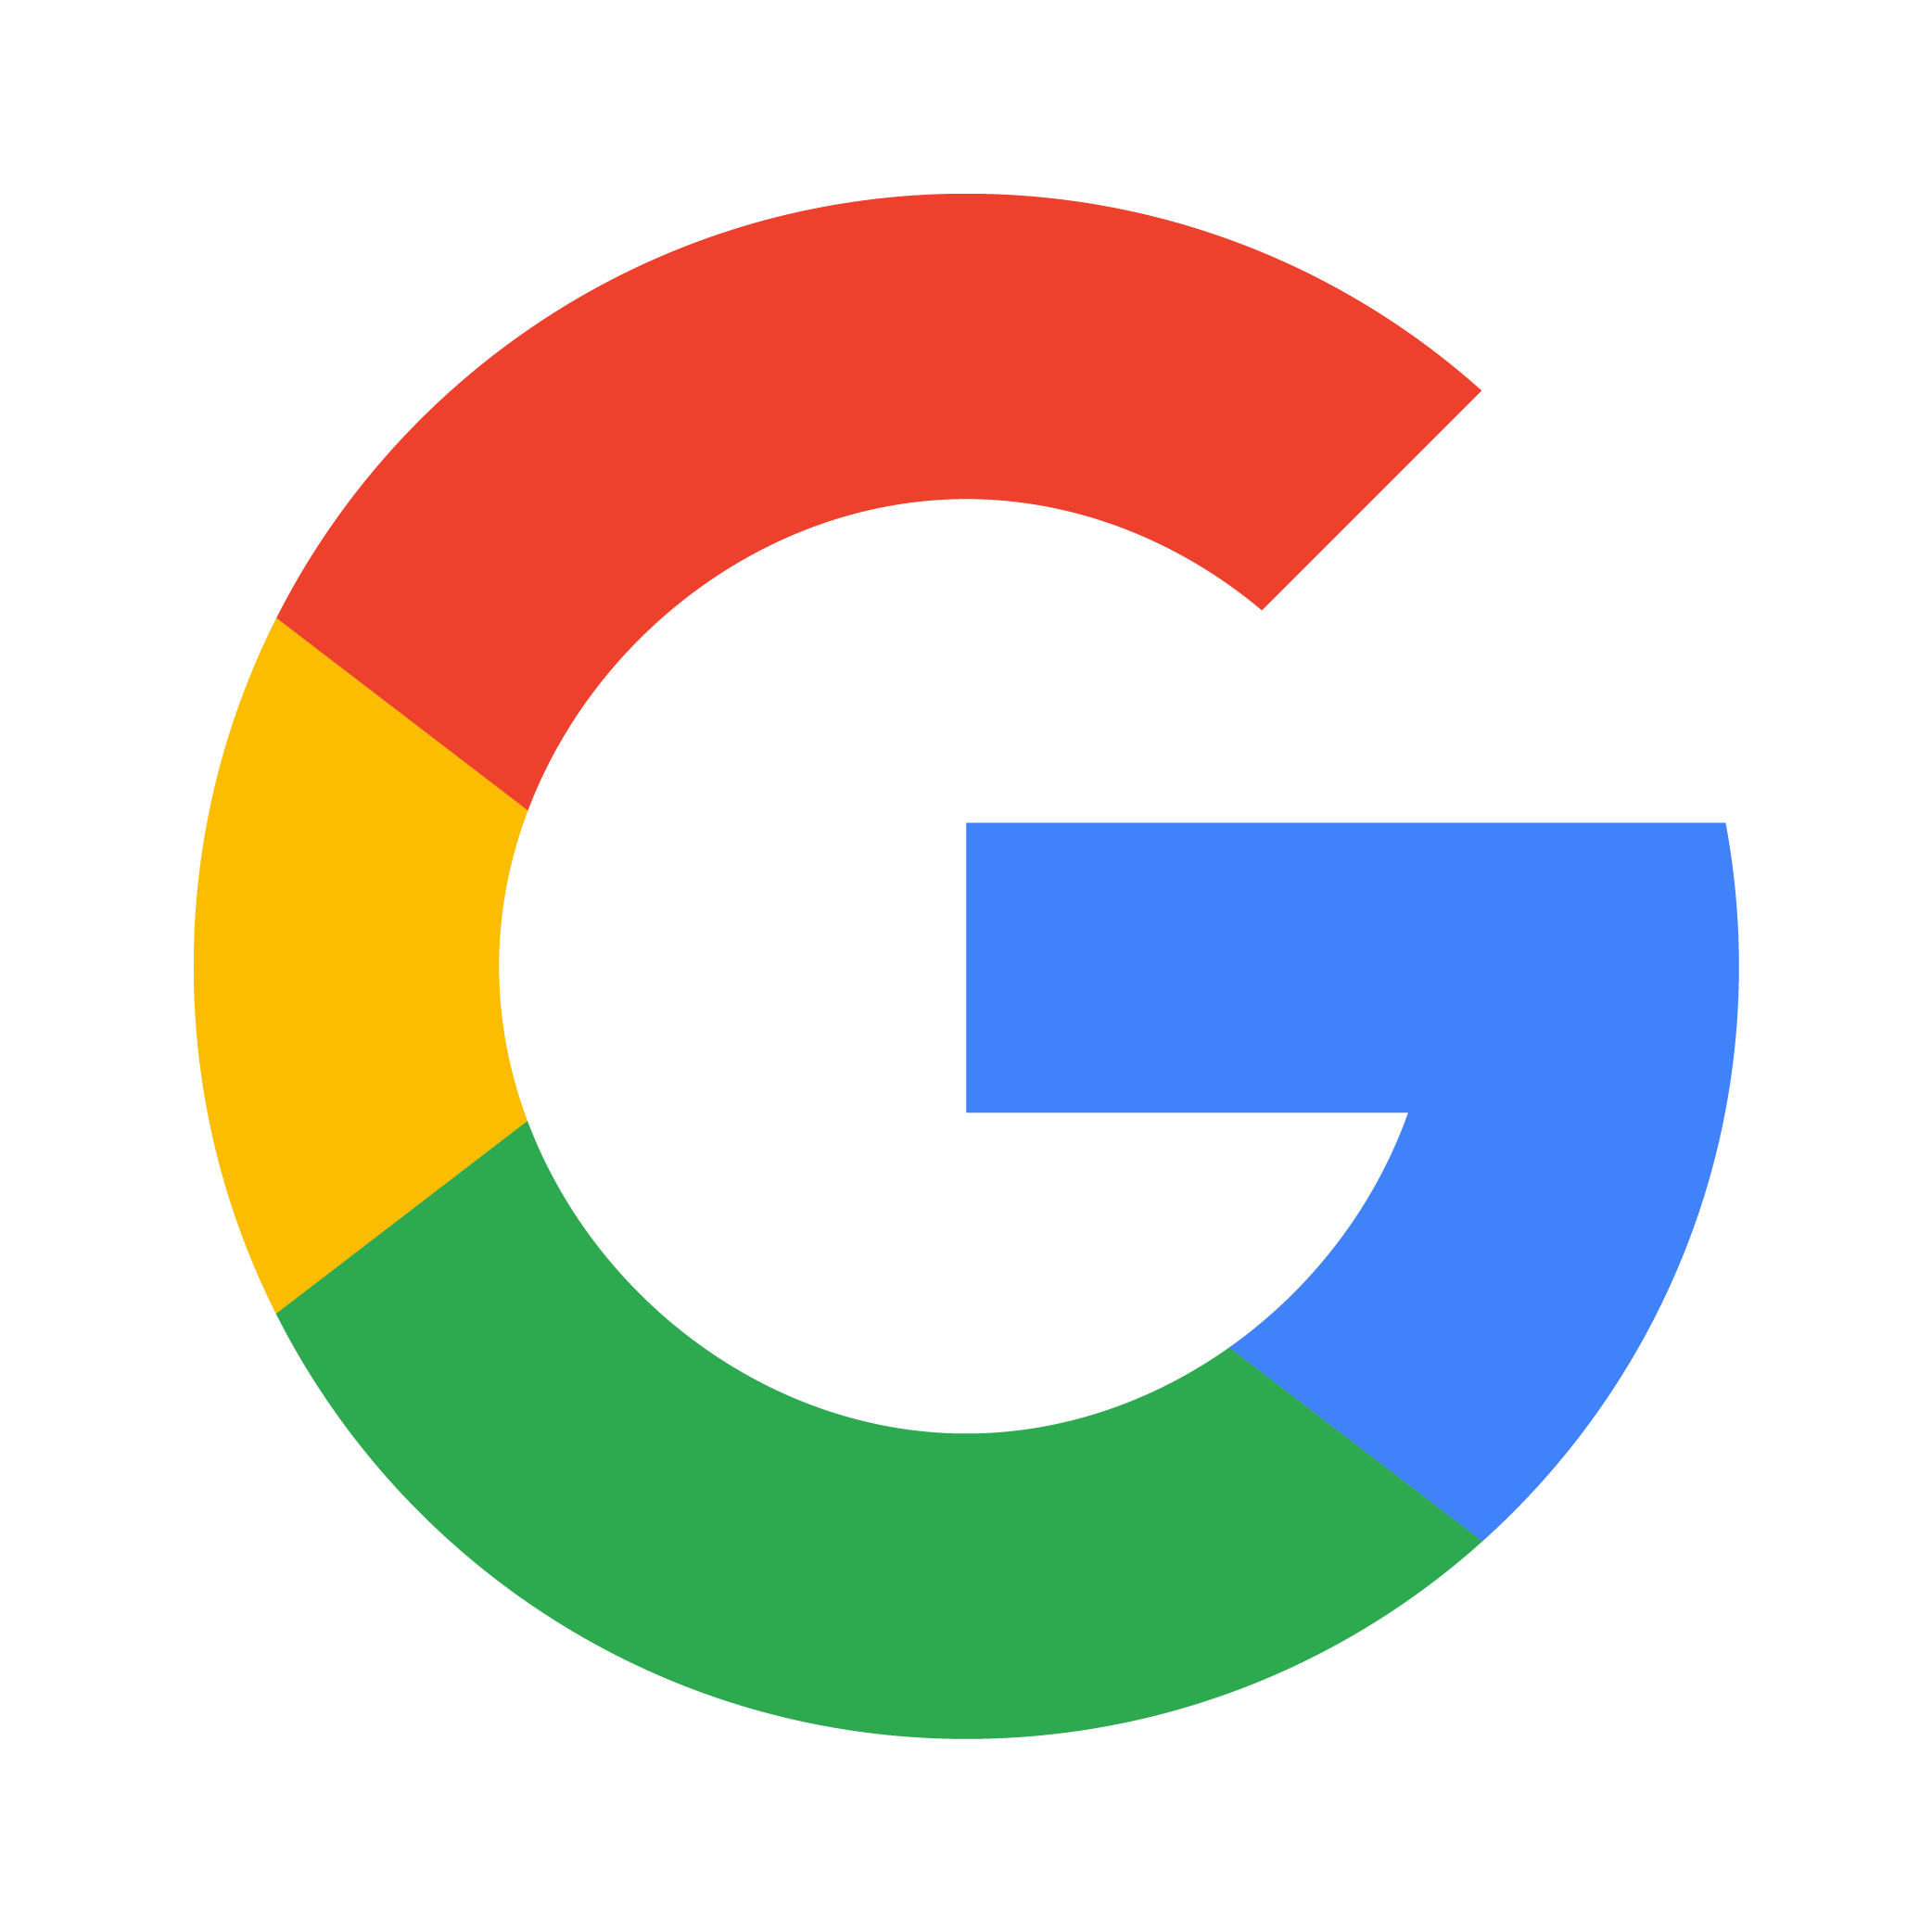 Icône Google HD⎪Vector illustrator (ai.) Google, Google